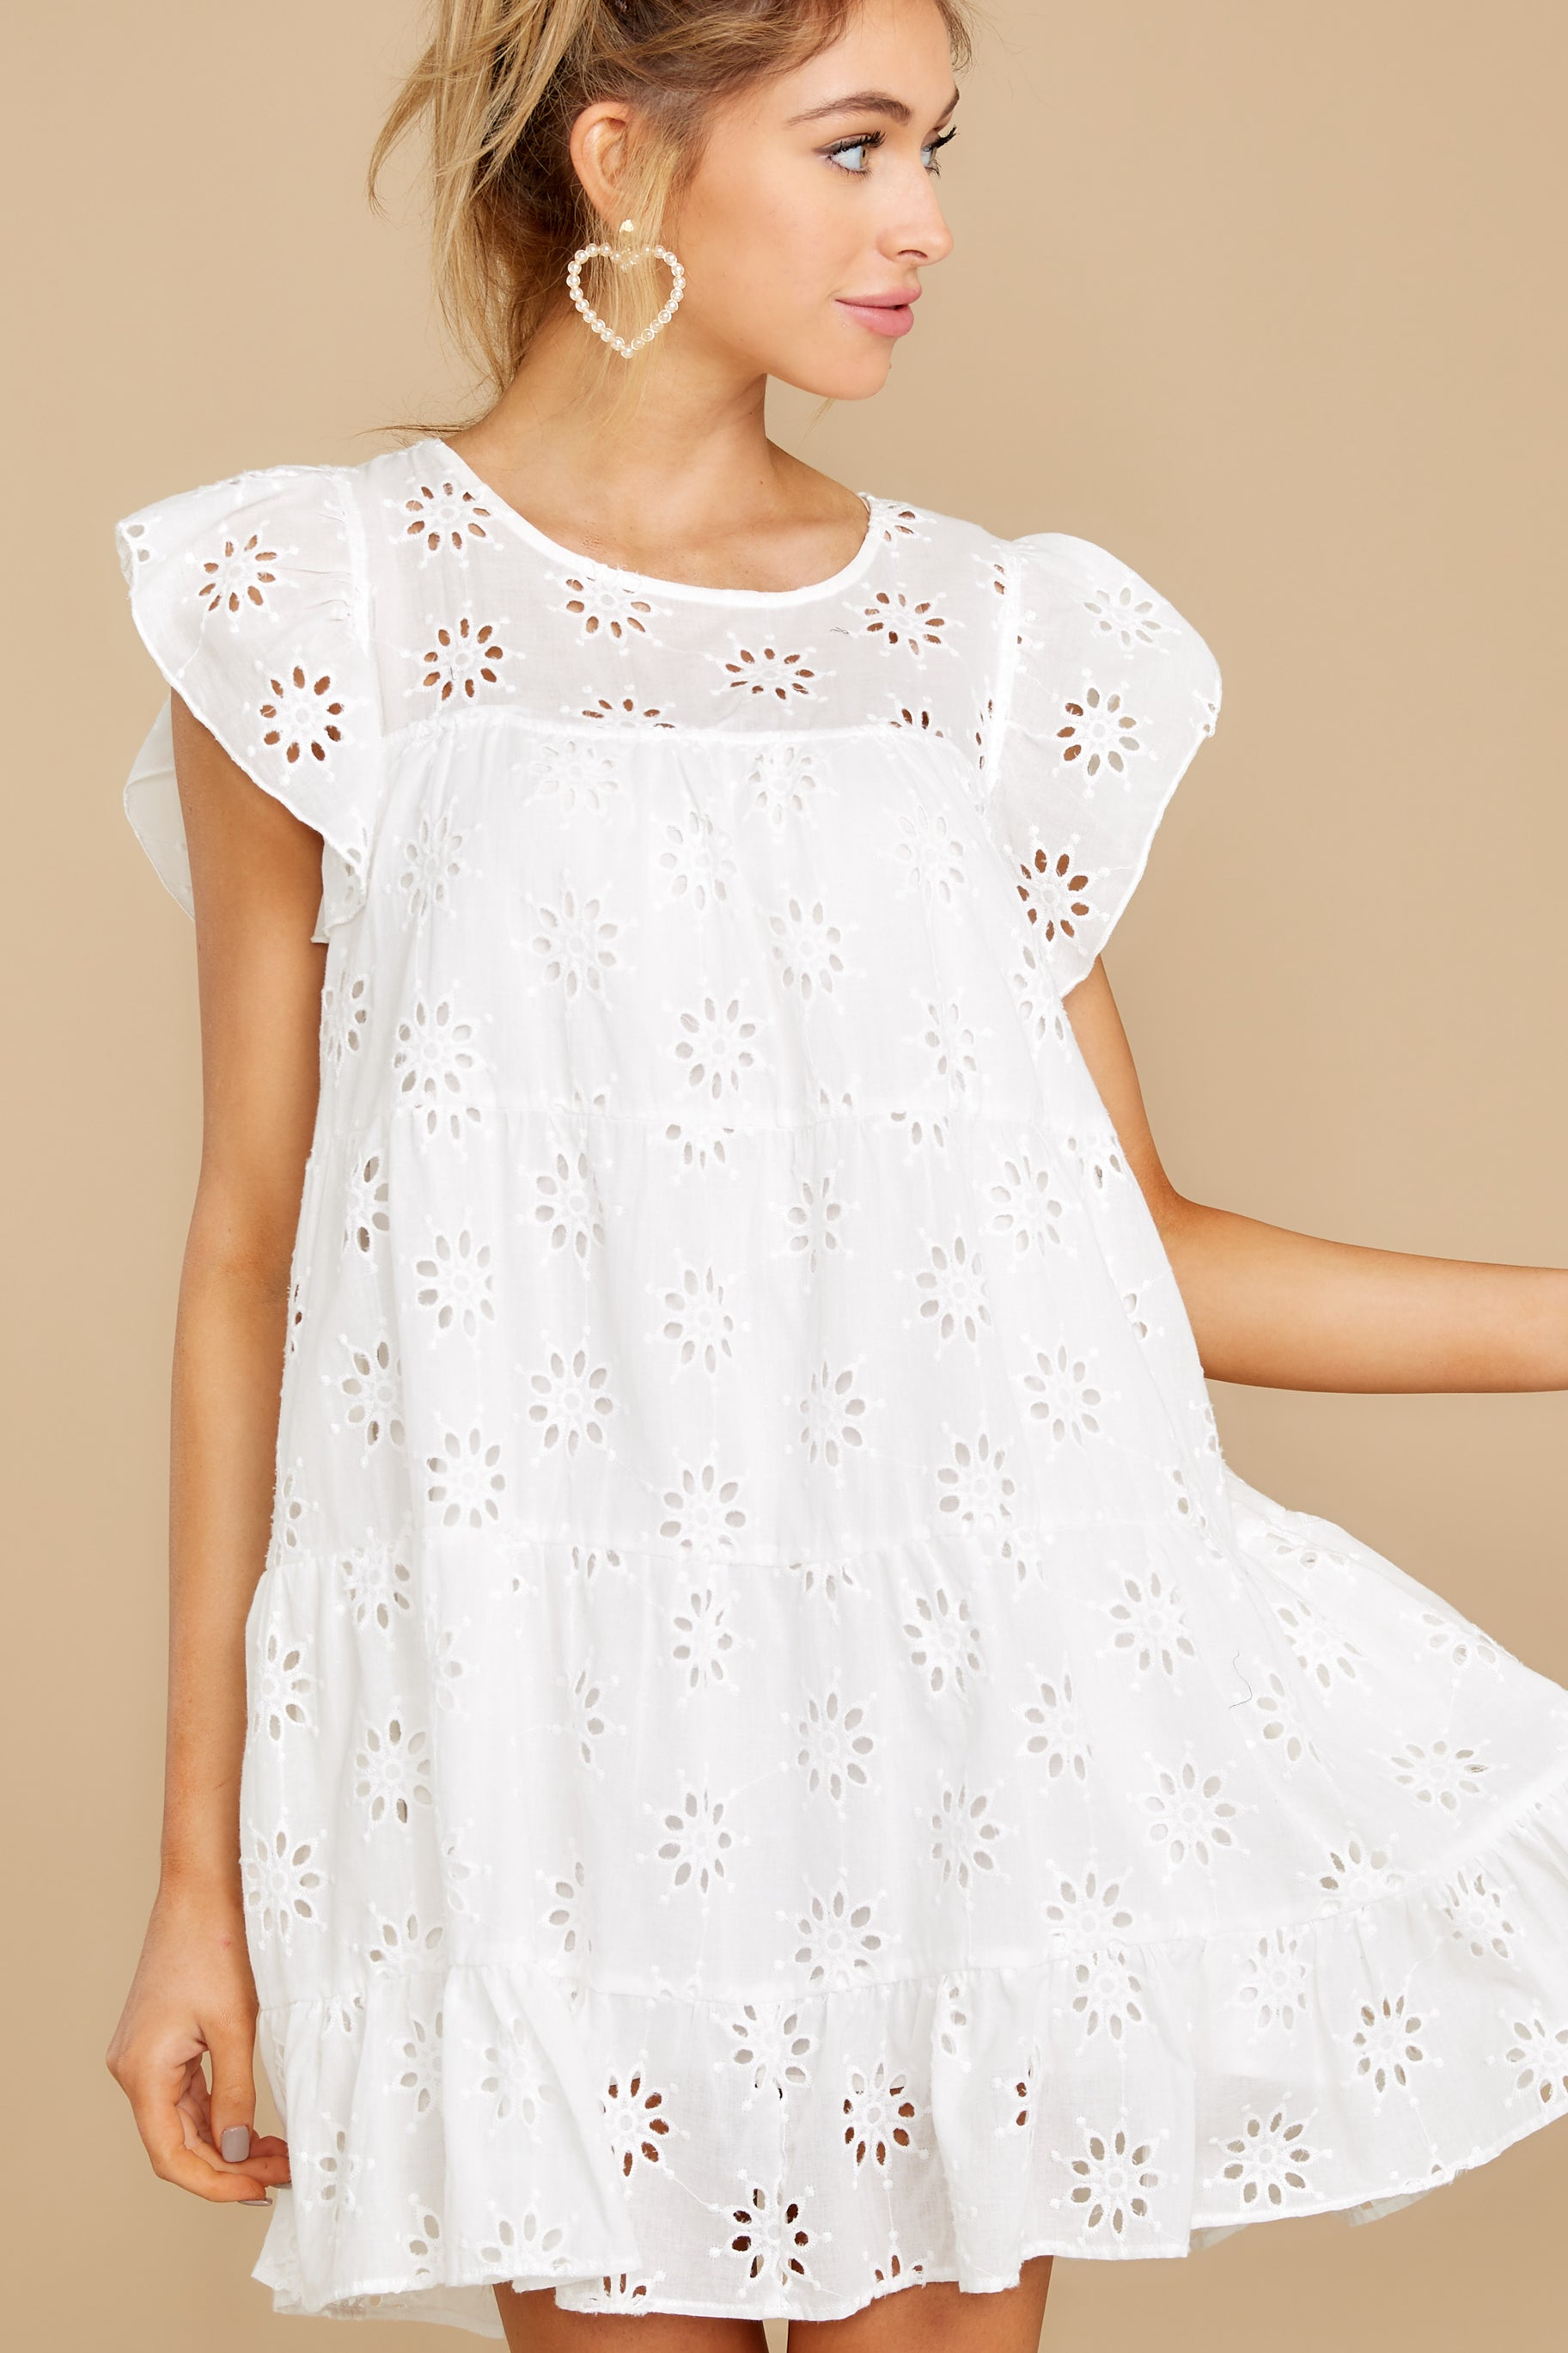 7 Eye For An Eyelet White Dress at reddress.com